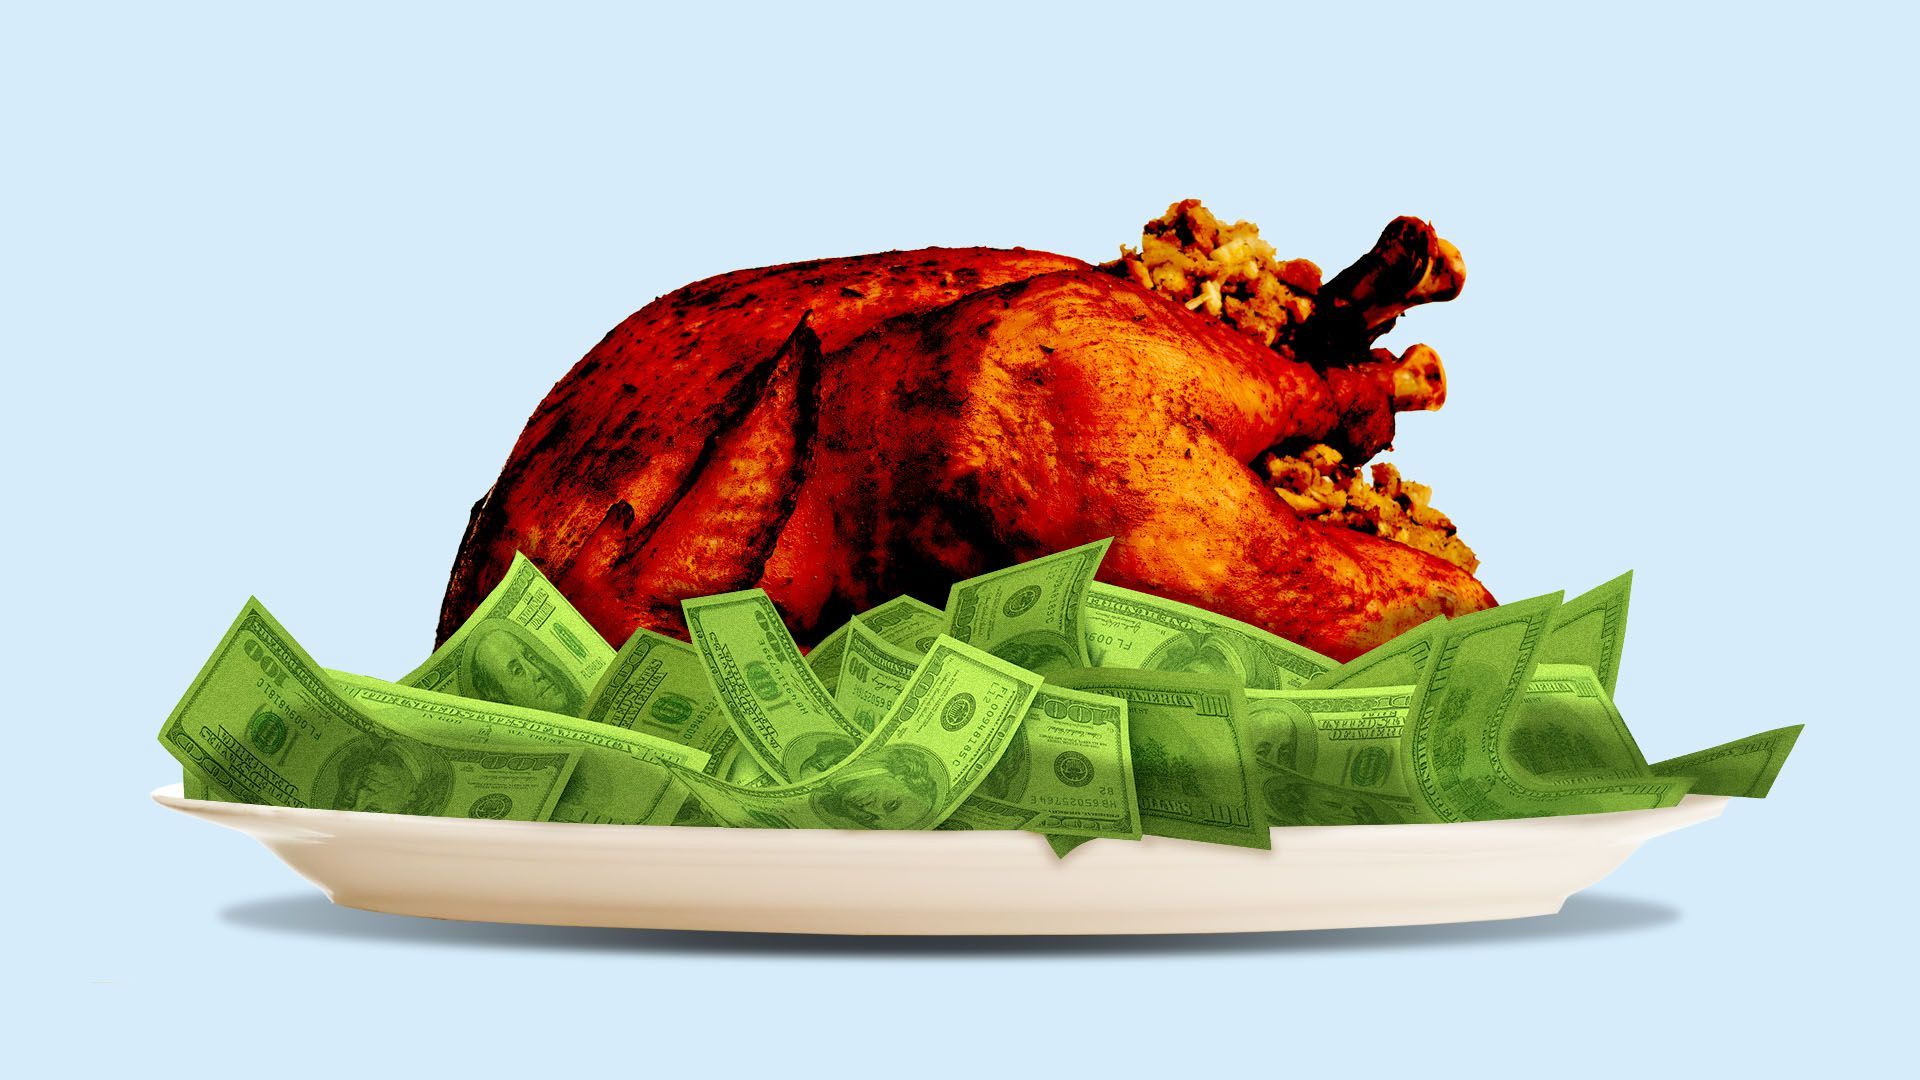 An illustration of a turkey in a bed of cash.